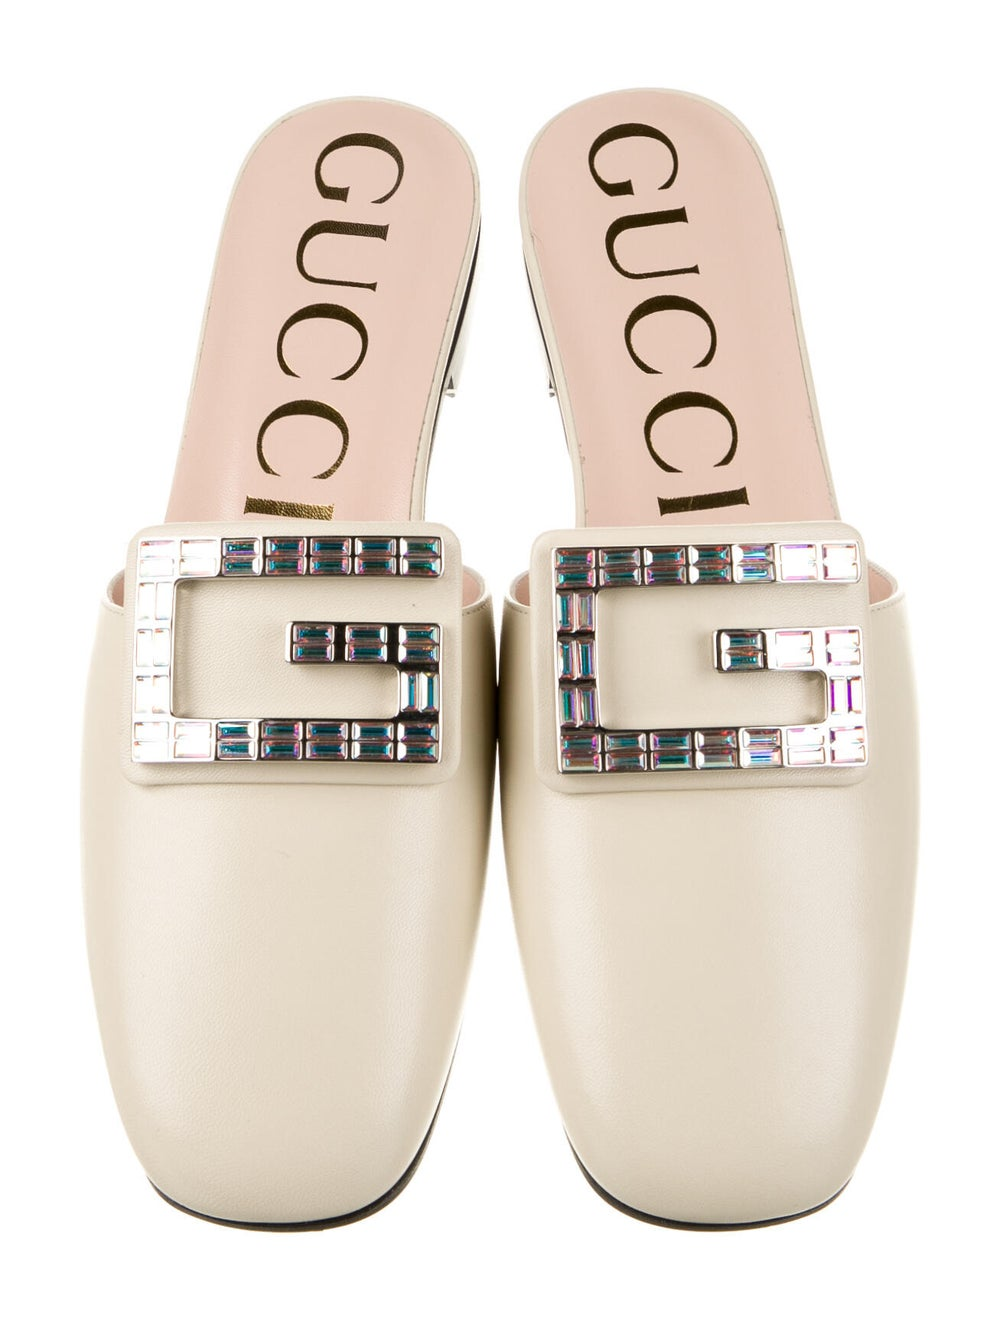 Gucci Leather Crystal Embellishments Mules - image 3